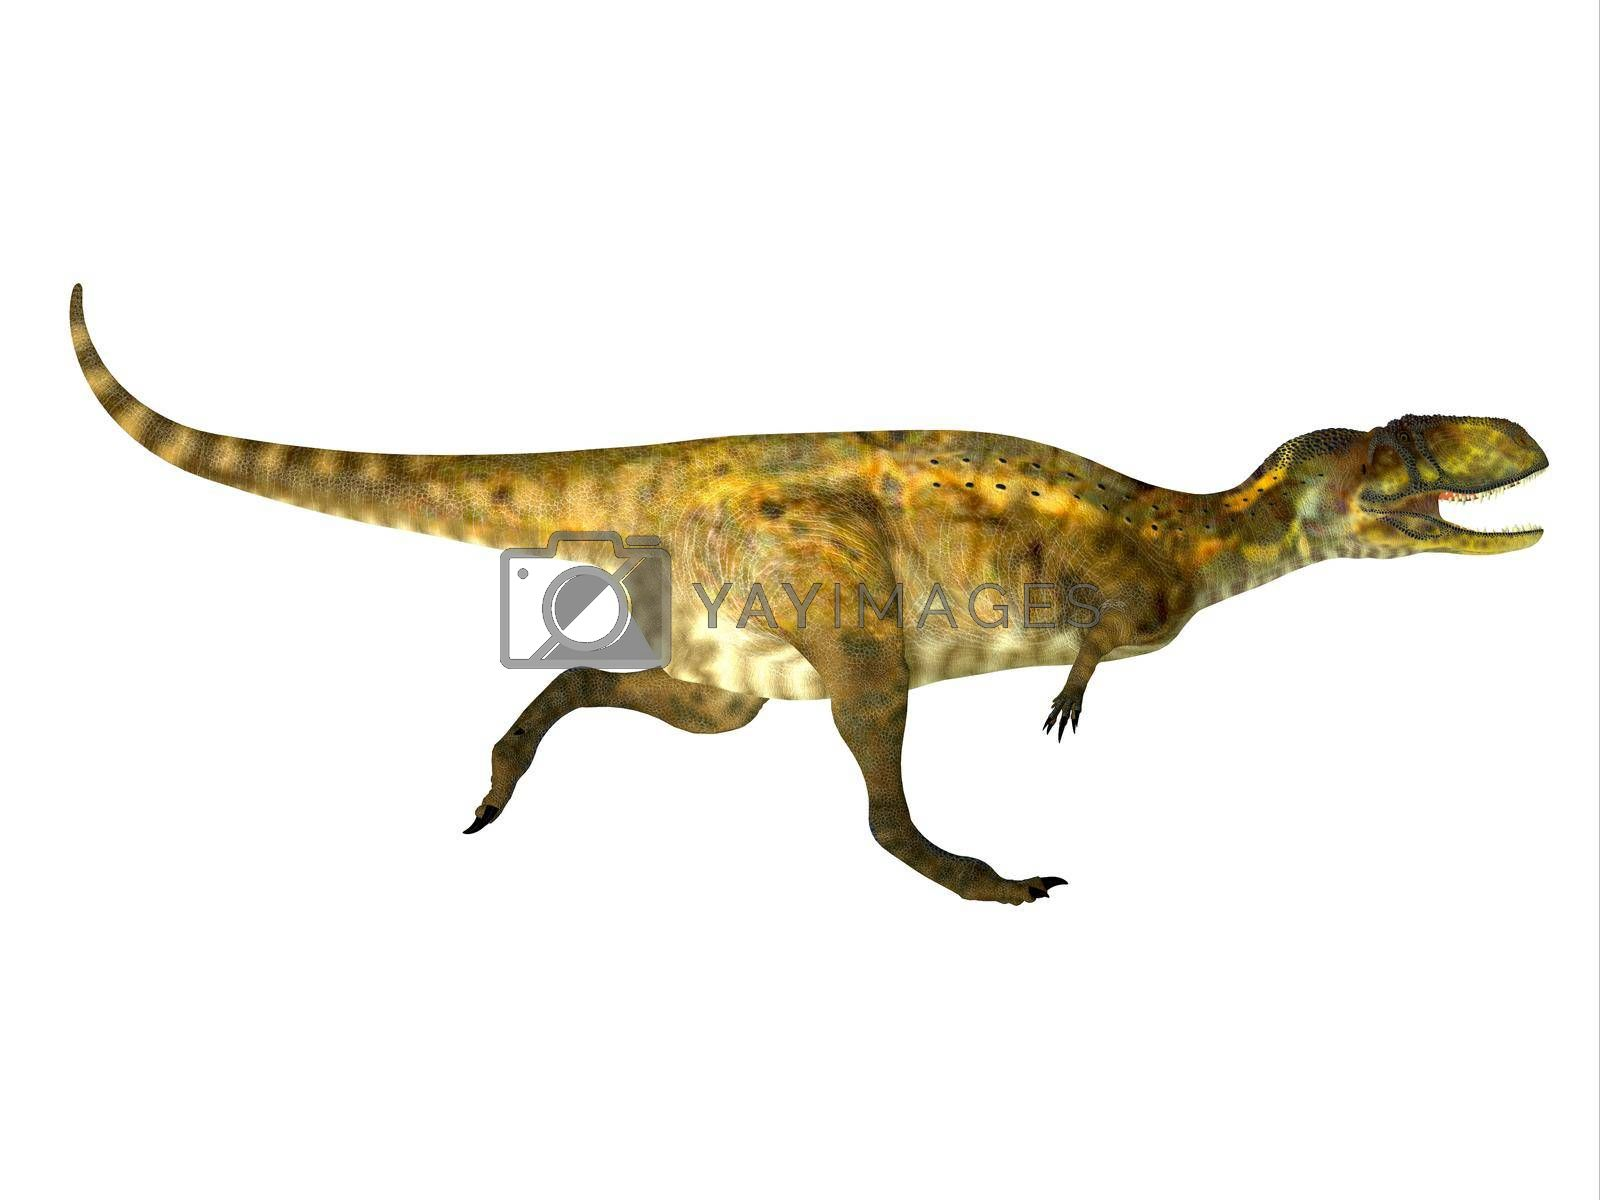 Abelisaurus was a theropod carnivorous dinosaur that lived during the Cretaceous Period of Argentina.